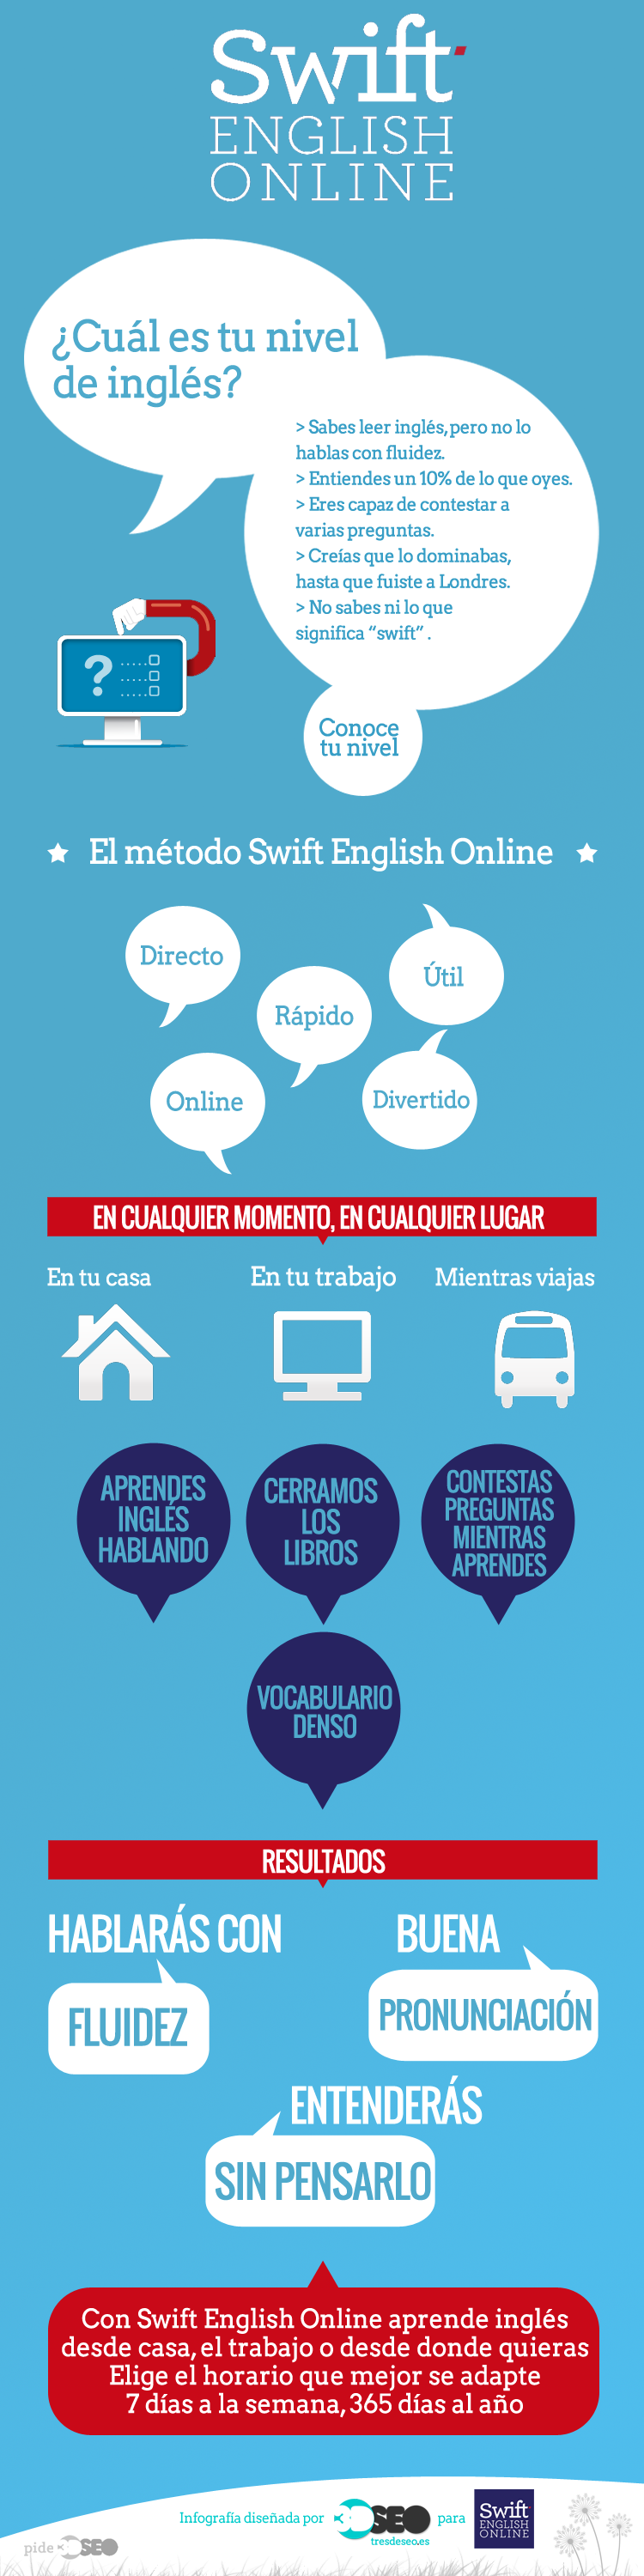 clases infles online swiftonline-infografia